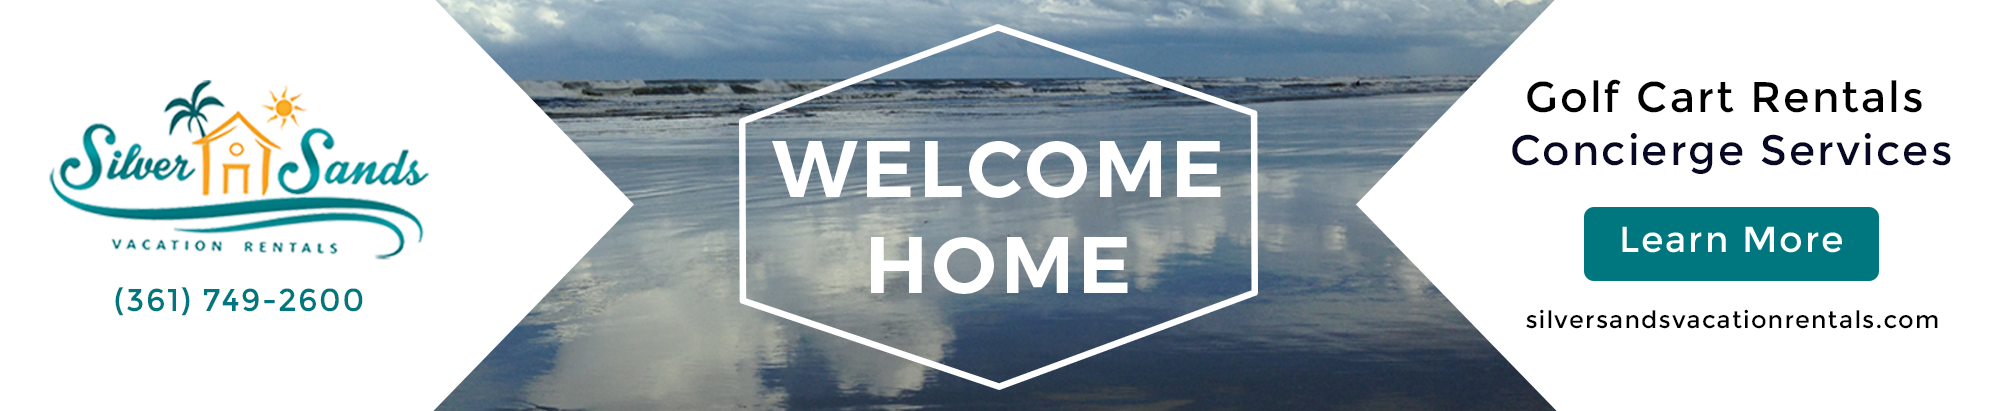 Welcome Home. Silver Sands Vacation Rentals. Golf Cart Rentals. Concierge Services.